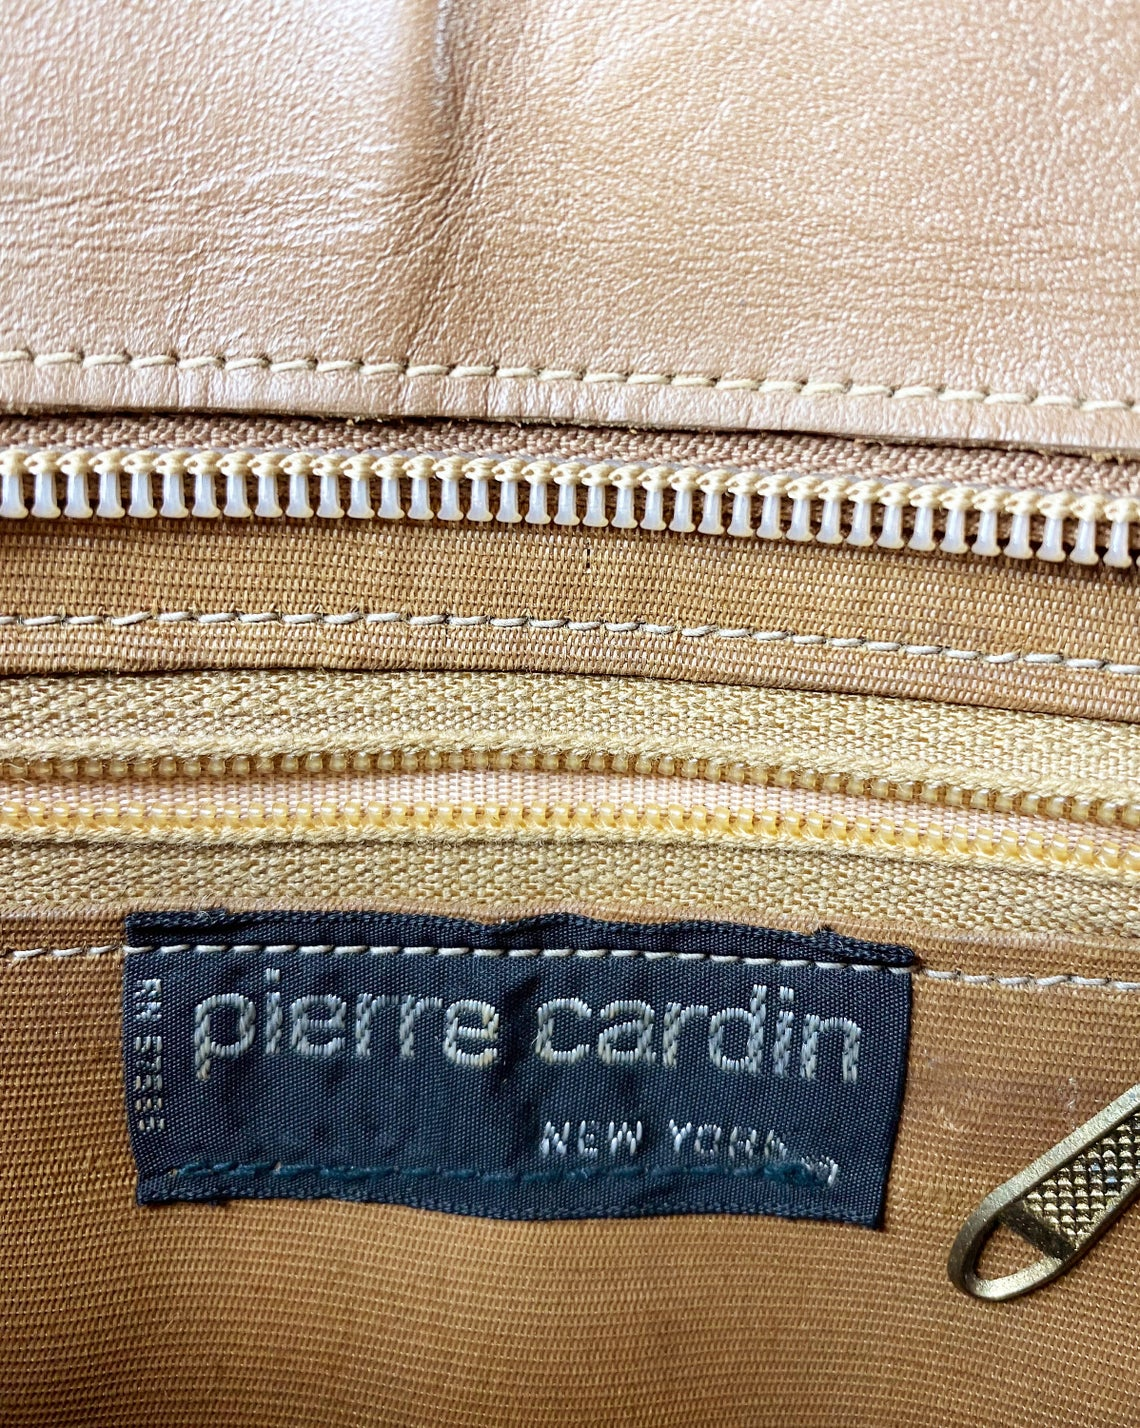 FRUIT Vintage original 1970s Pierre Cardin logo canvas handbag with tan leather trim.